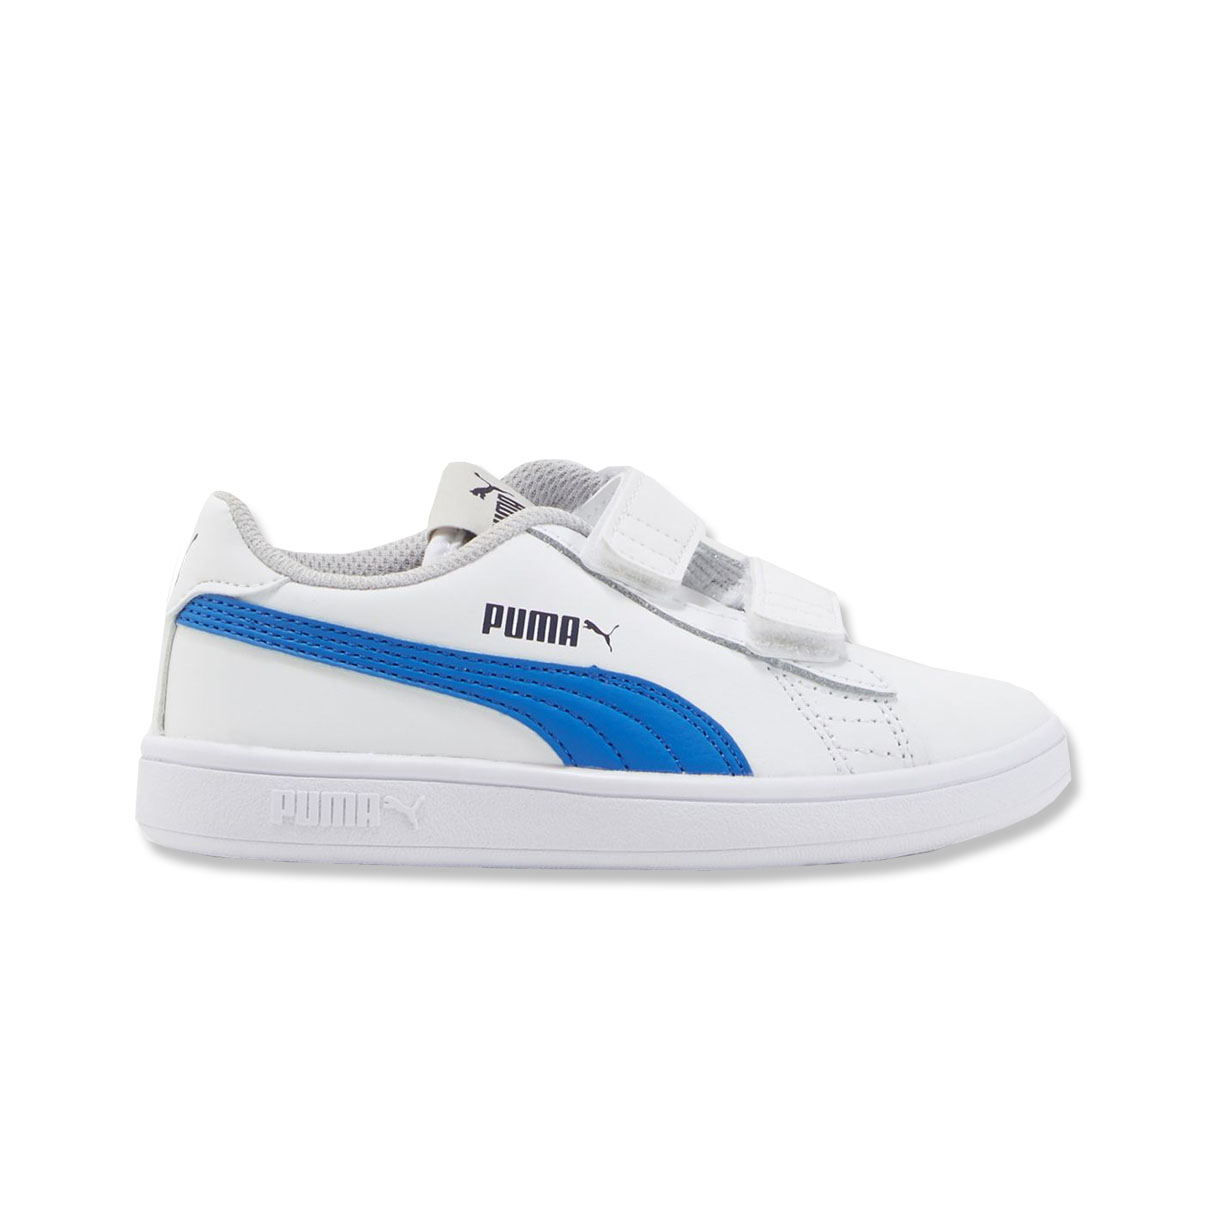 2e736ec11543 Details about Puma Smash V2 Leather Junior Kids Sports Trainer Shoe  White Blue